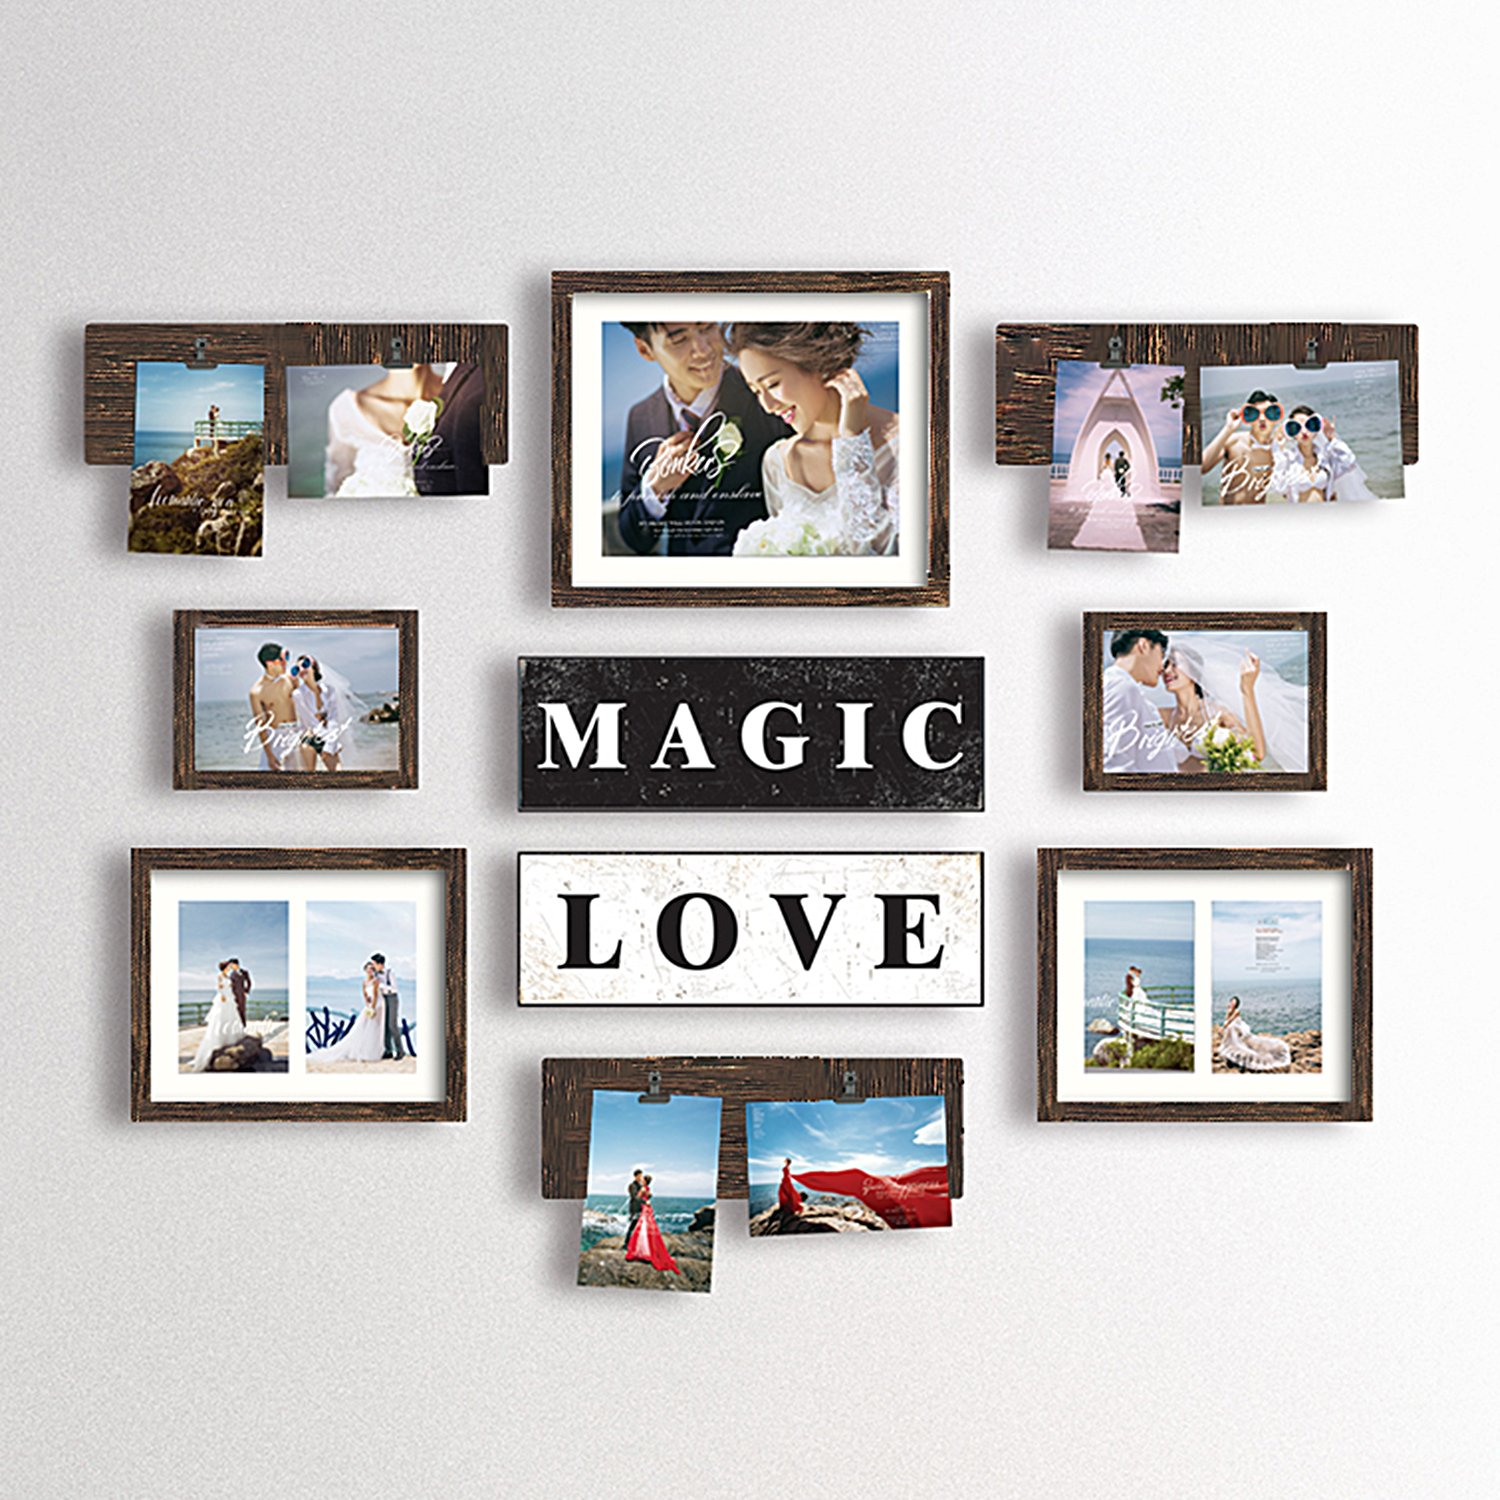 Hello Laura Magic Love Photo Frame | Picture Frame Set - Valentine Day Couple Birthday Made to Display Three 4x6 Photos - Ready to Hang or Stand with Built in Easel